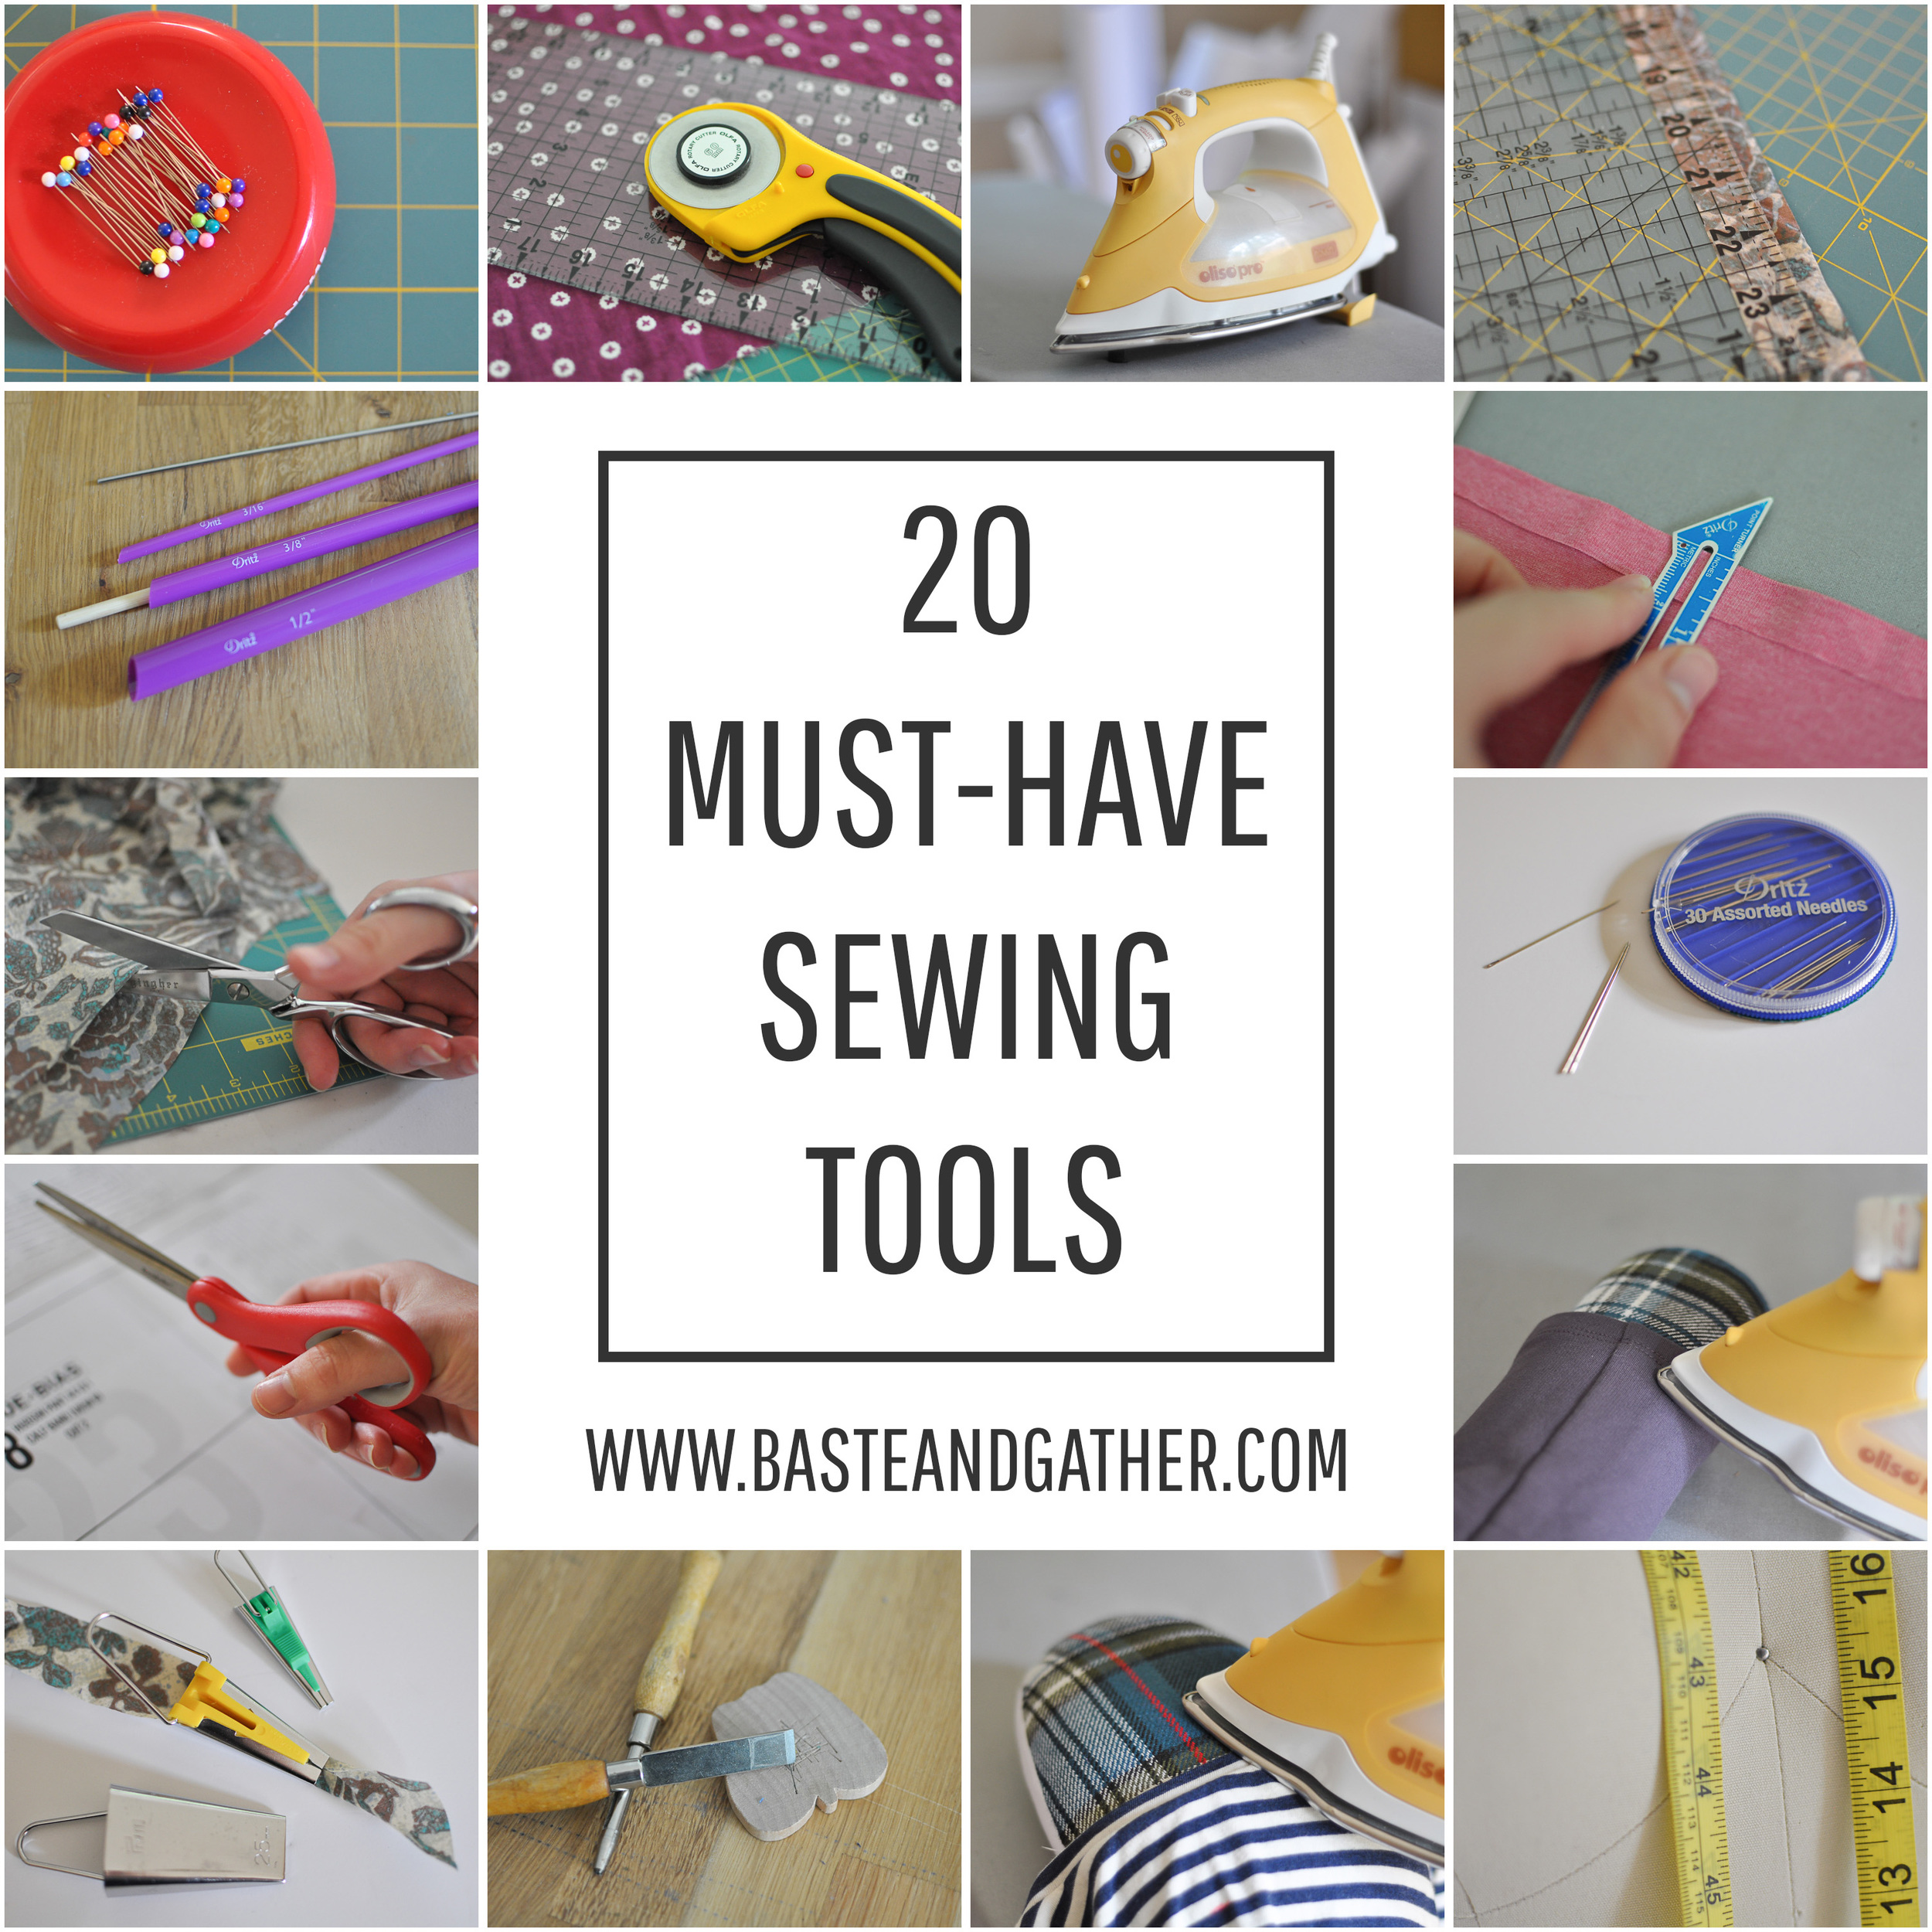 must-have-sewing-tools-collage.jpg